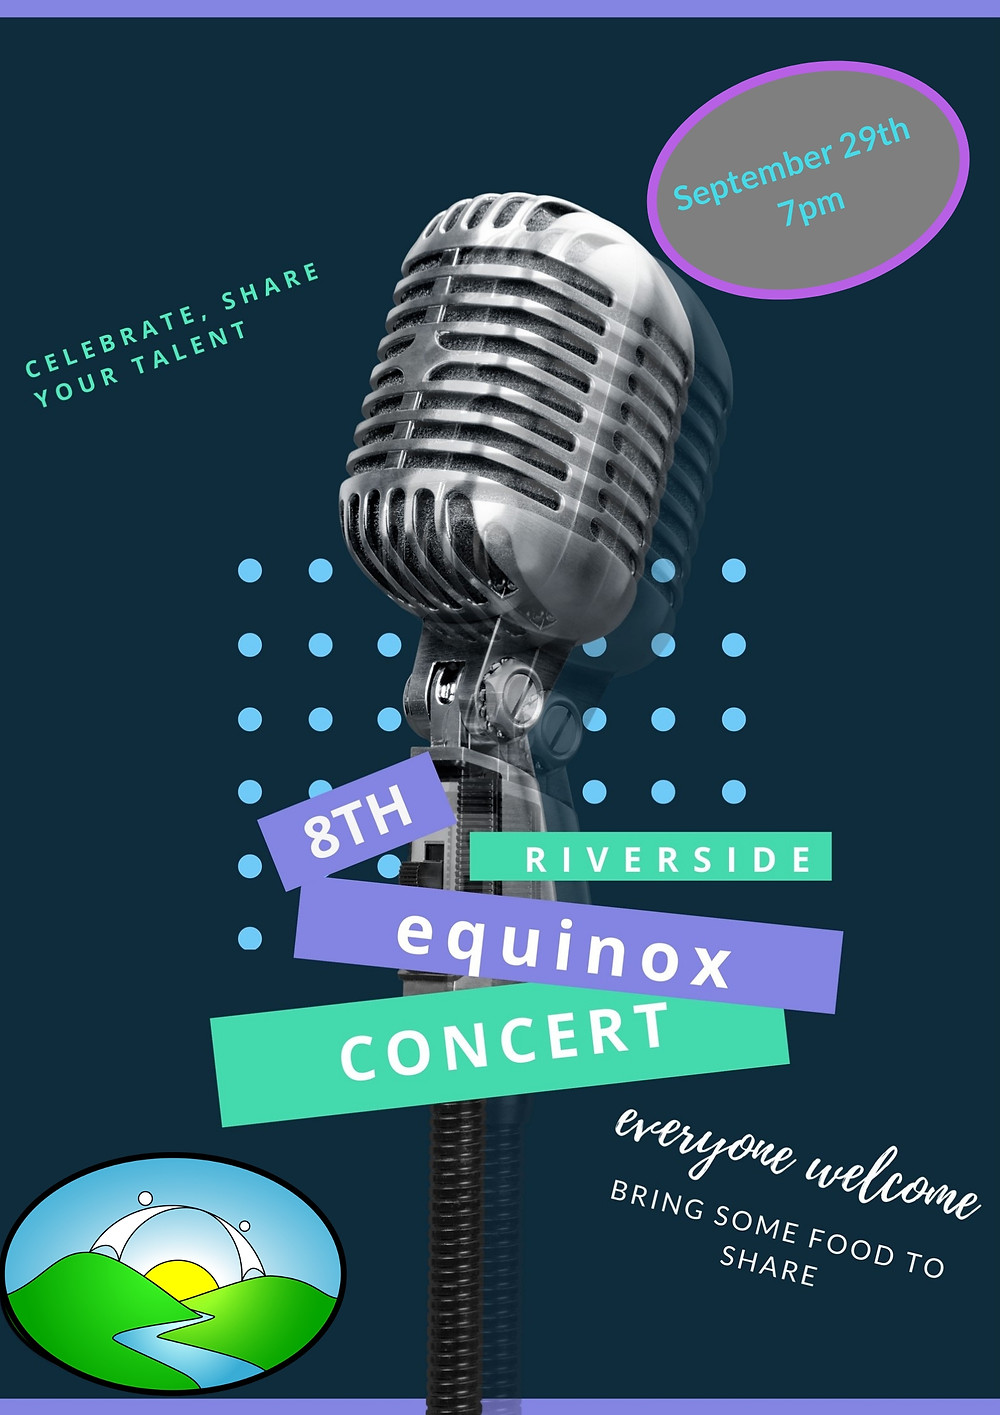 Equinox Concert at Riverside Poster